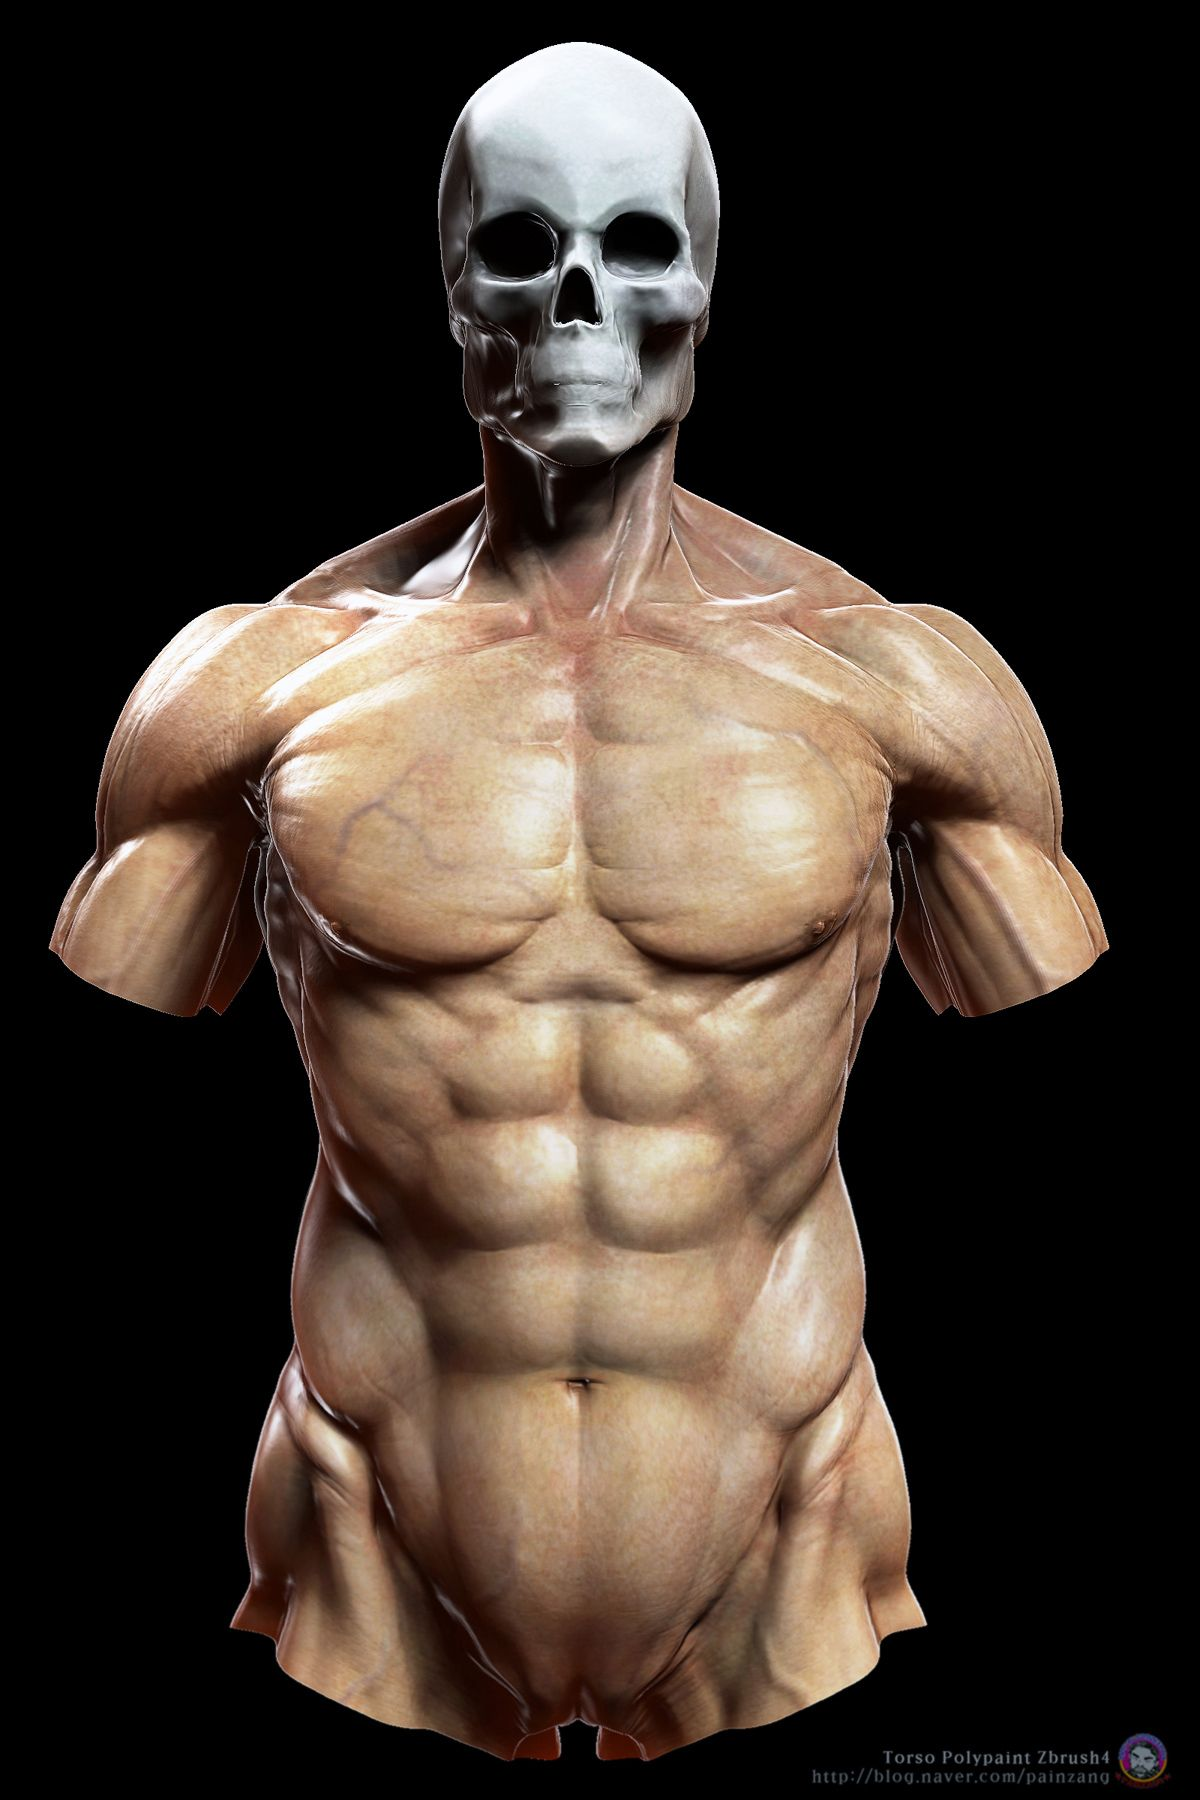 http://www.zbrushcentral.com/showthread.php?167407-human-anatomy ...